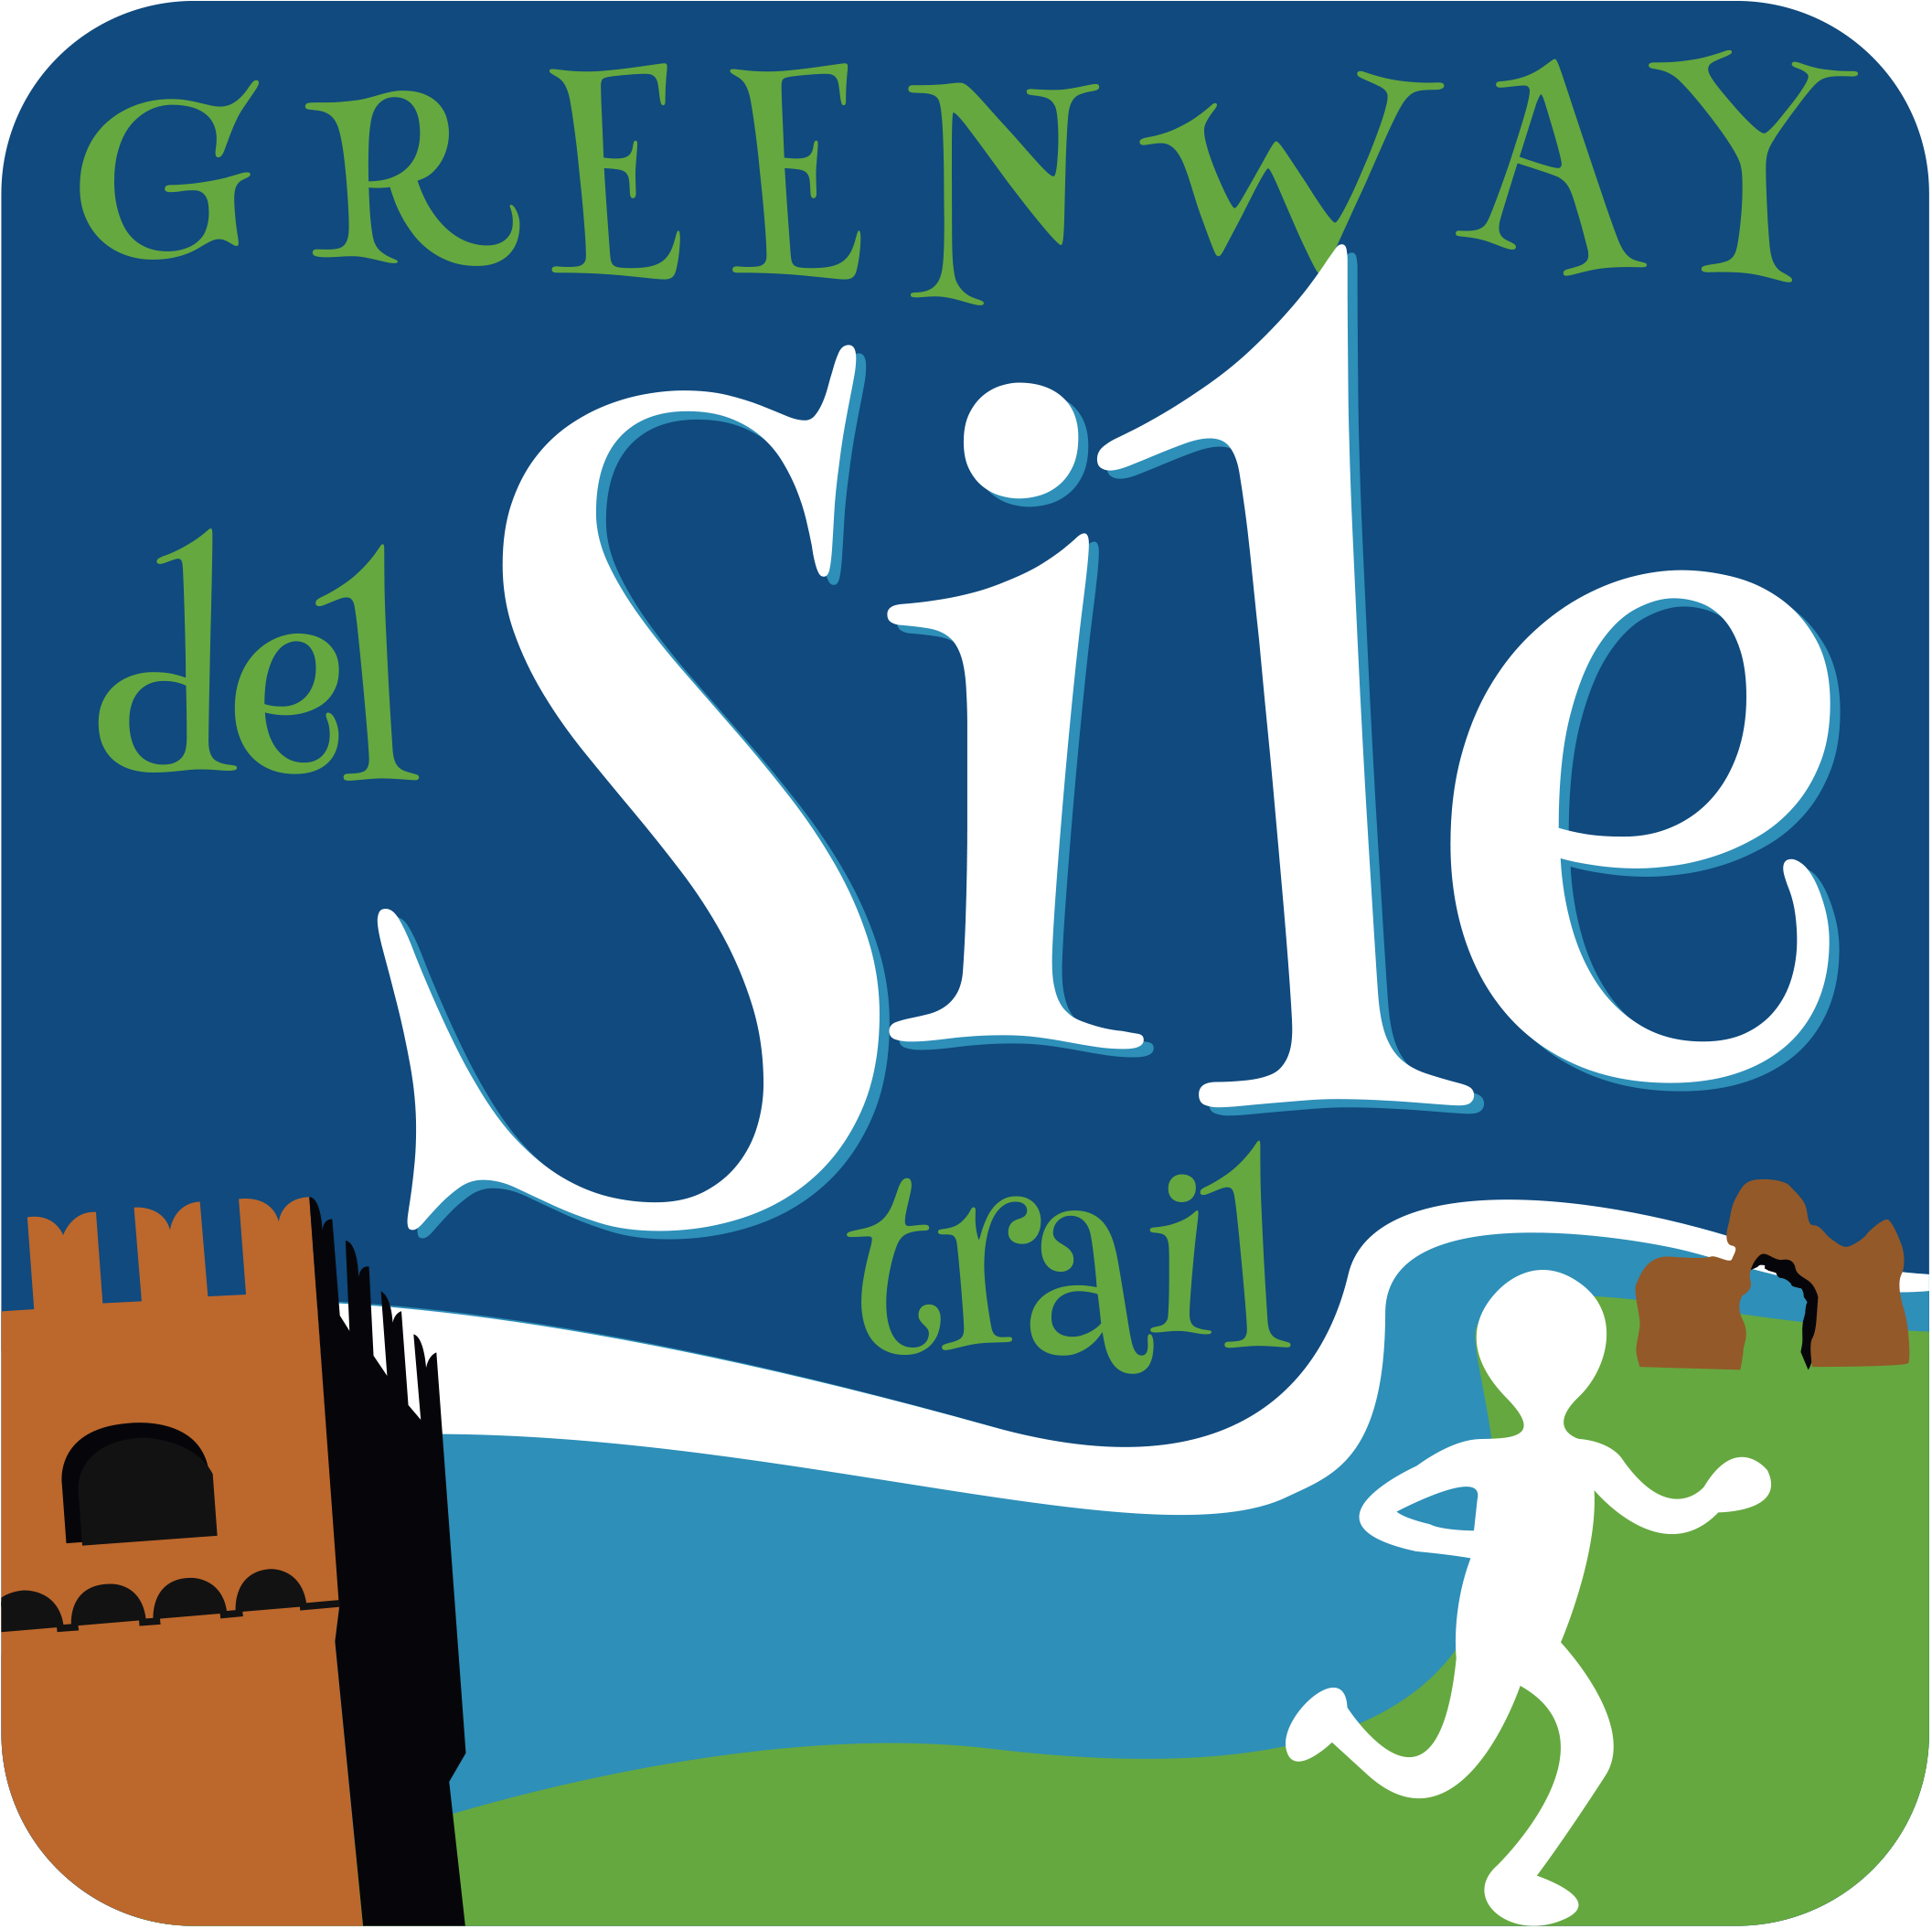 Greenway del Sile trail autogestito